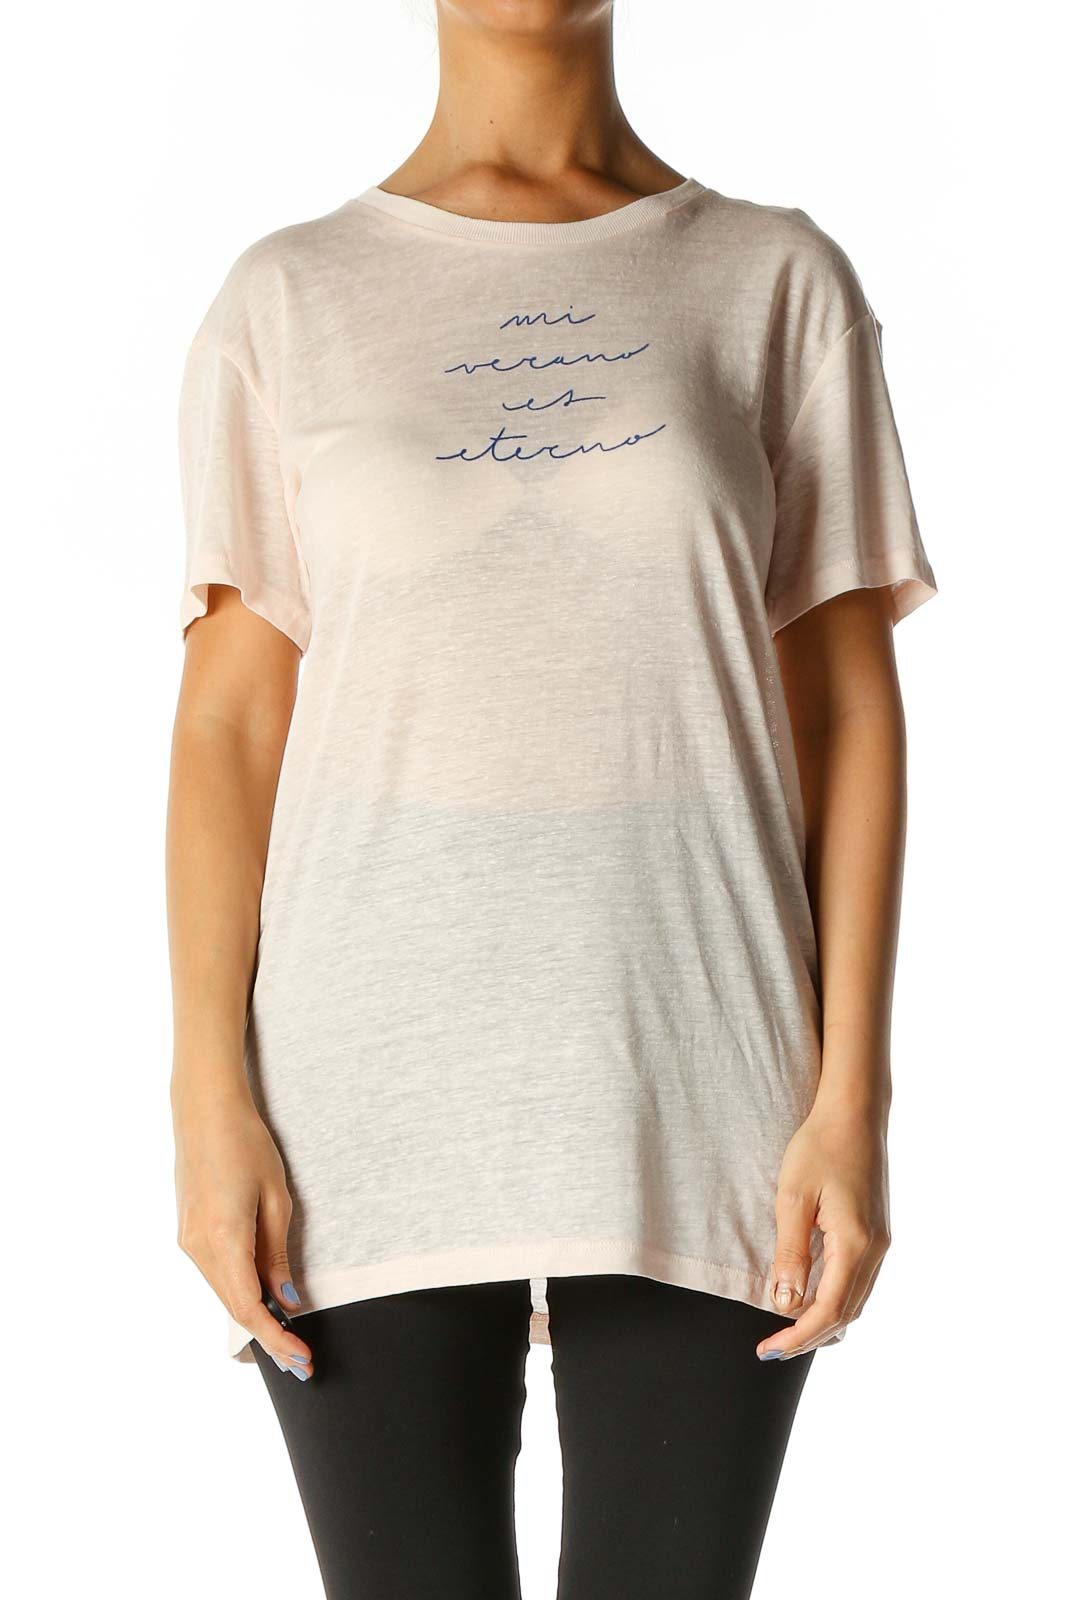 Beige Graphic Print Casual T-Shirt Front